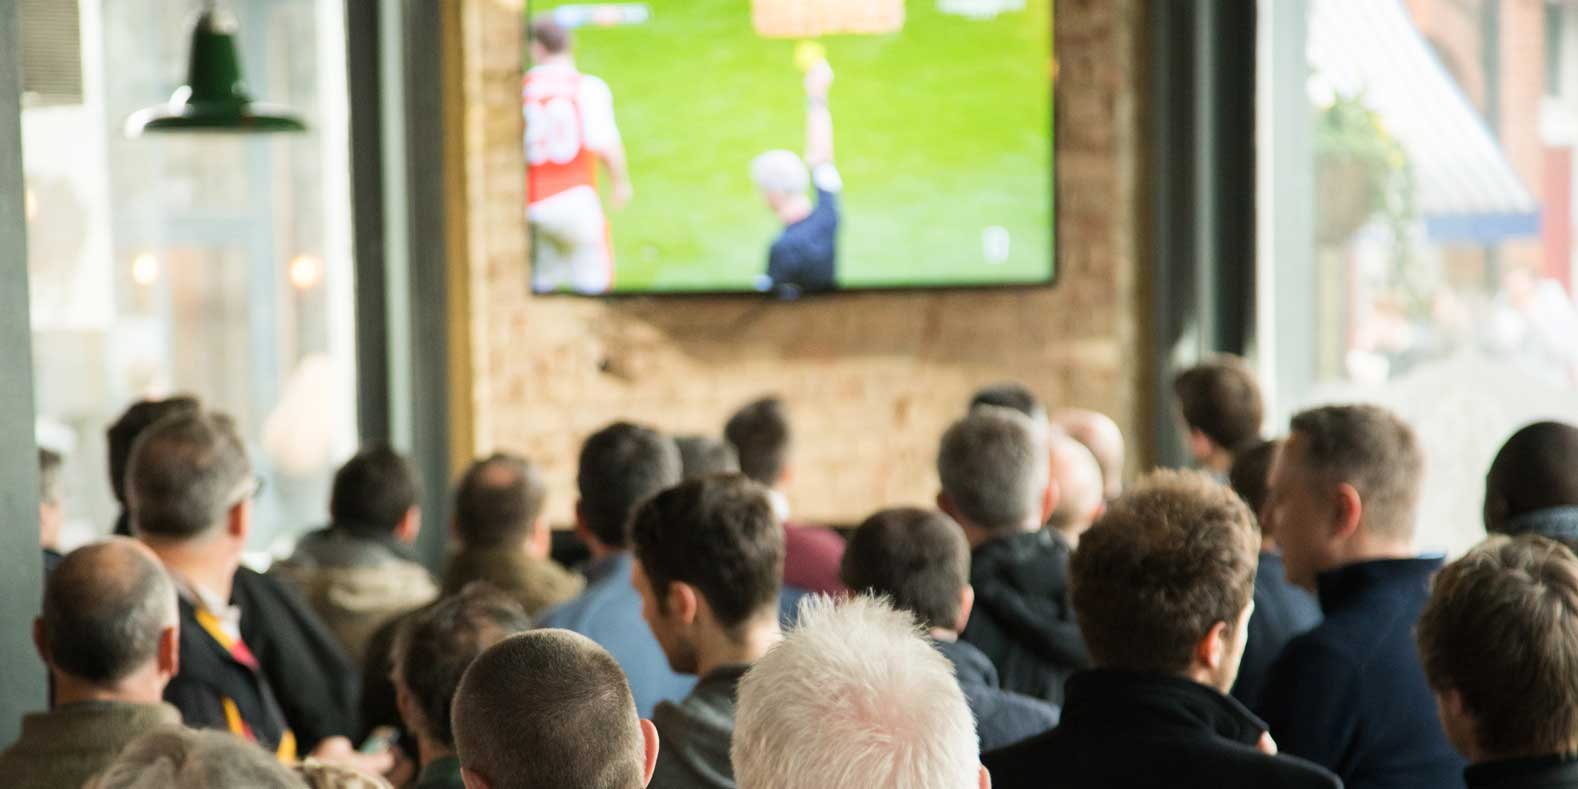 Watch football at the Alex